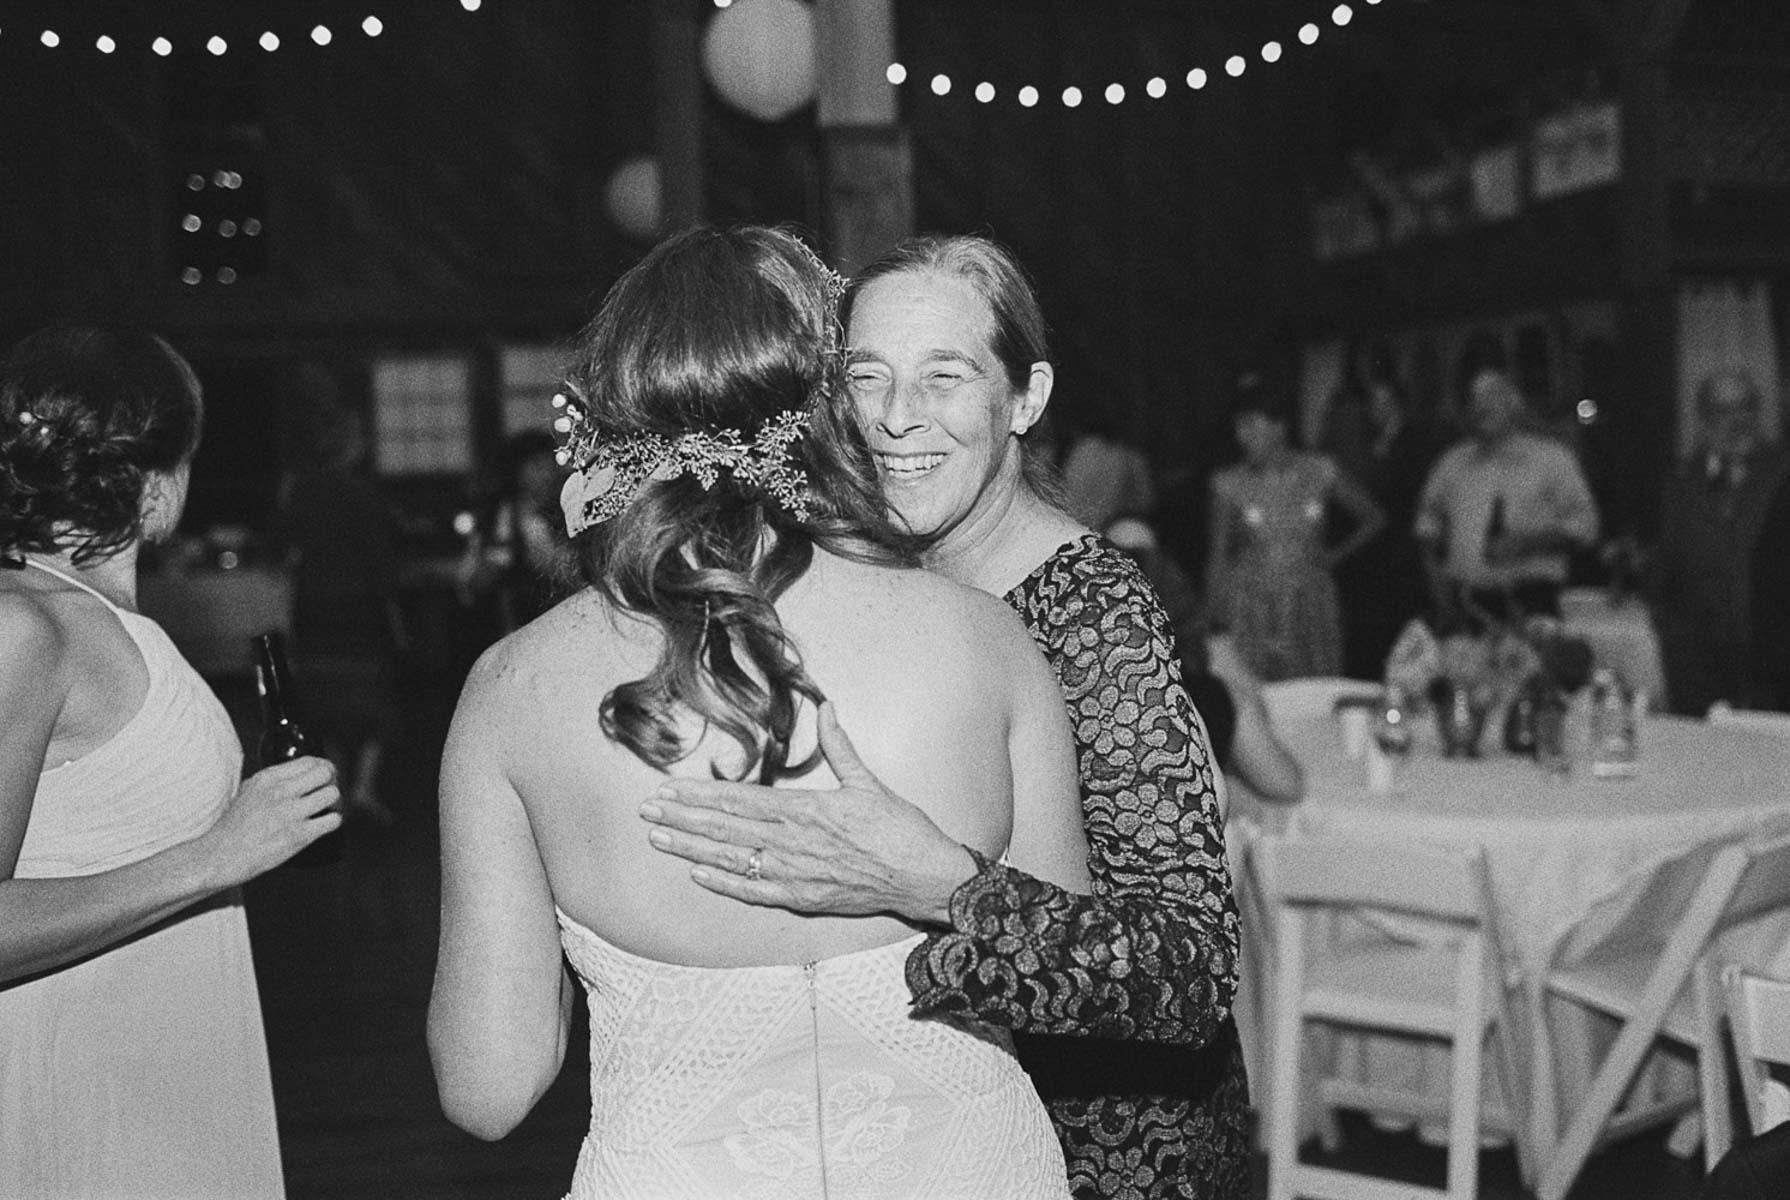 Dancing the night away at a Crockett Farm Wedding on Whidbey Island